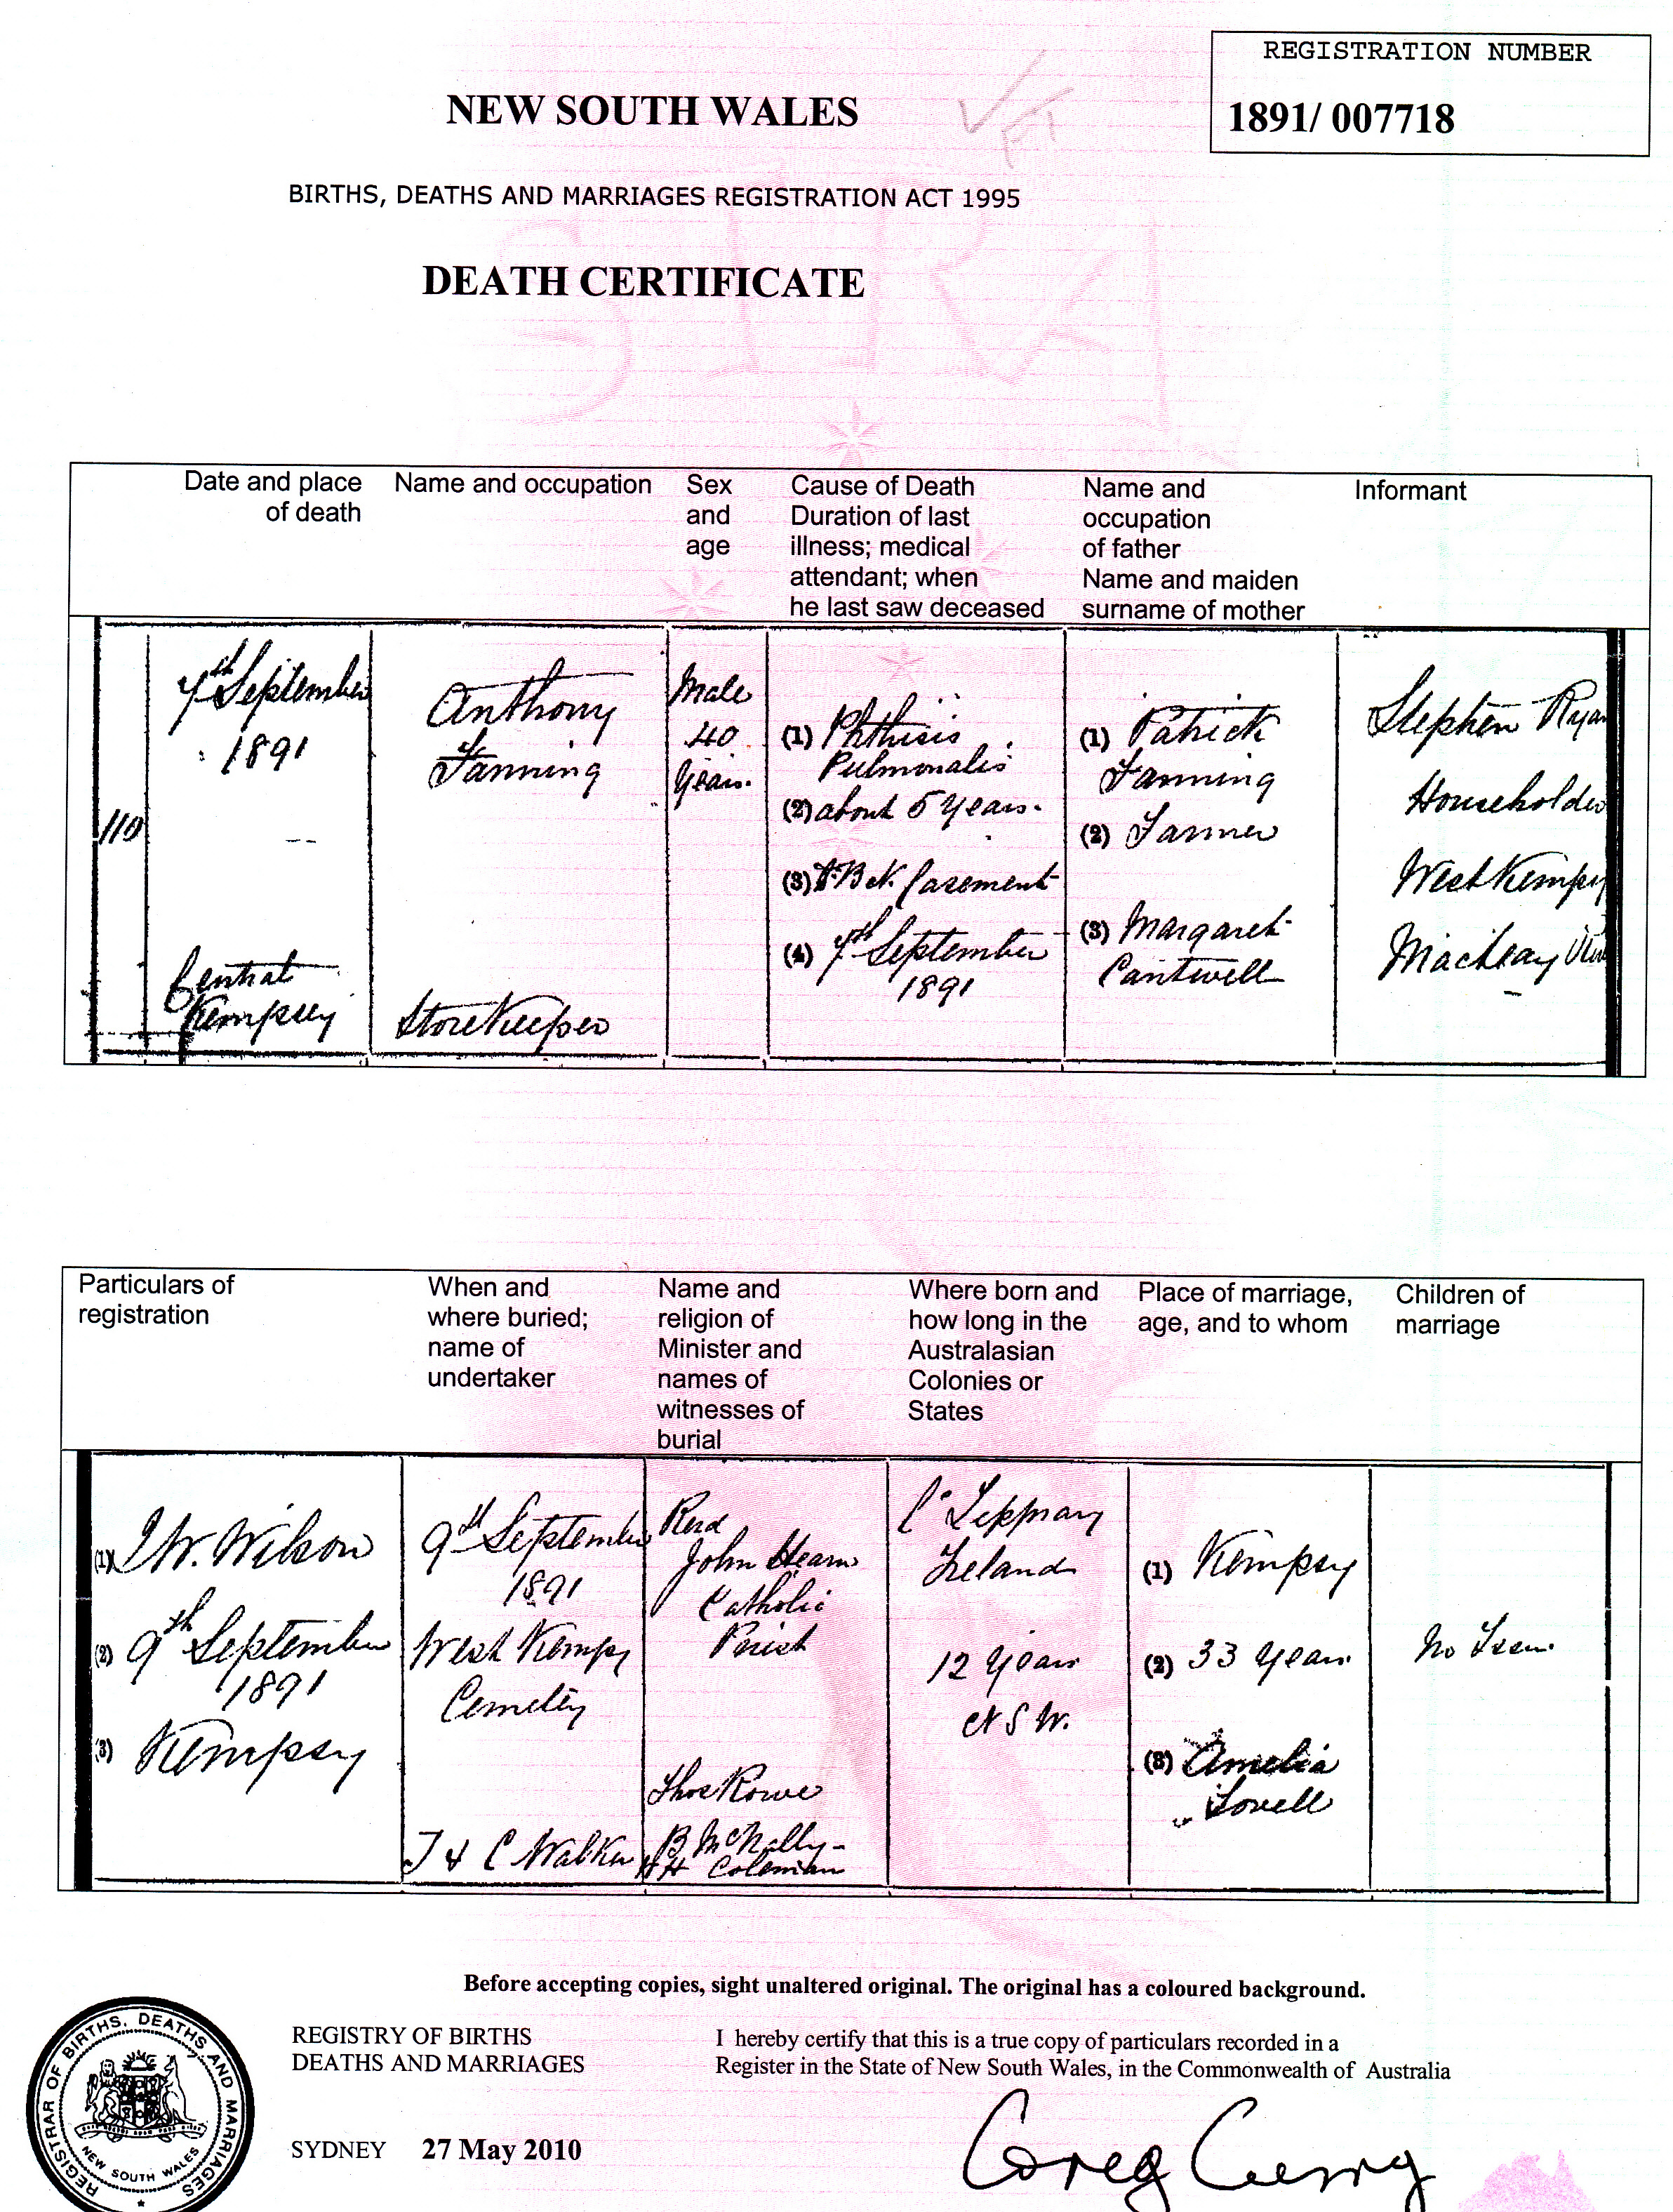 Anthony Fanning Death Certificate 1891 NSW_NEW